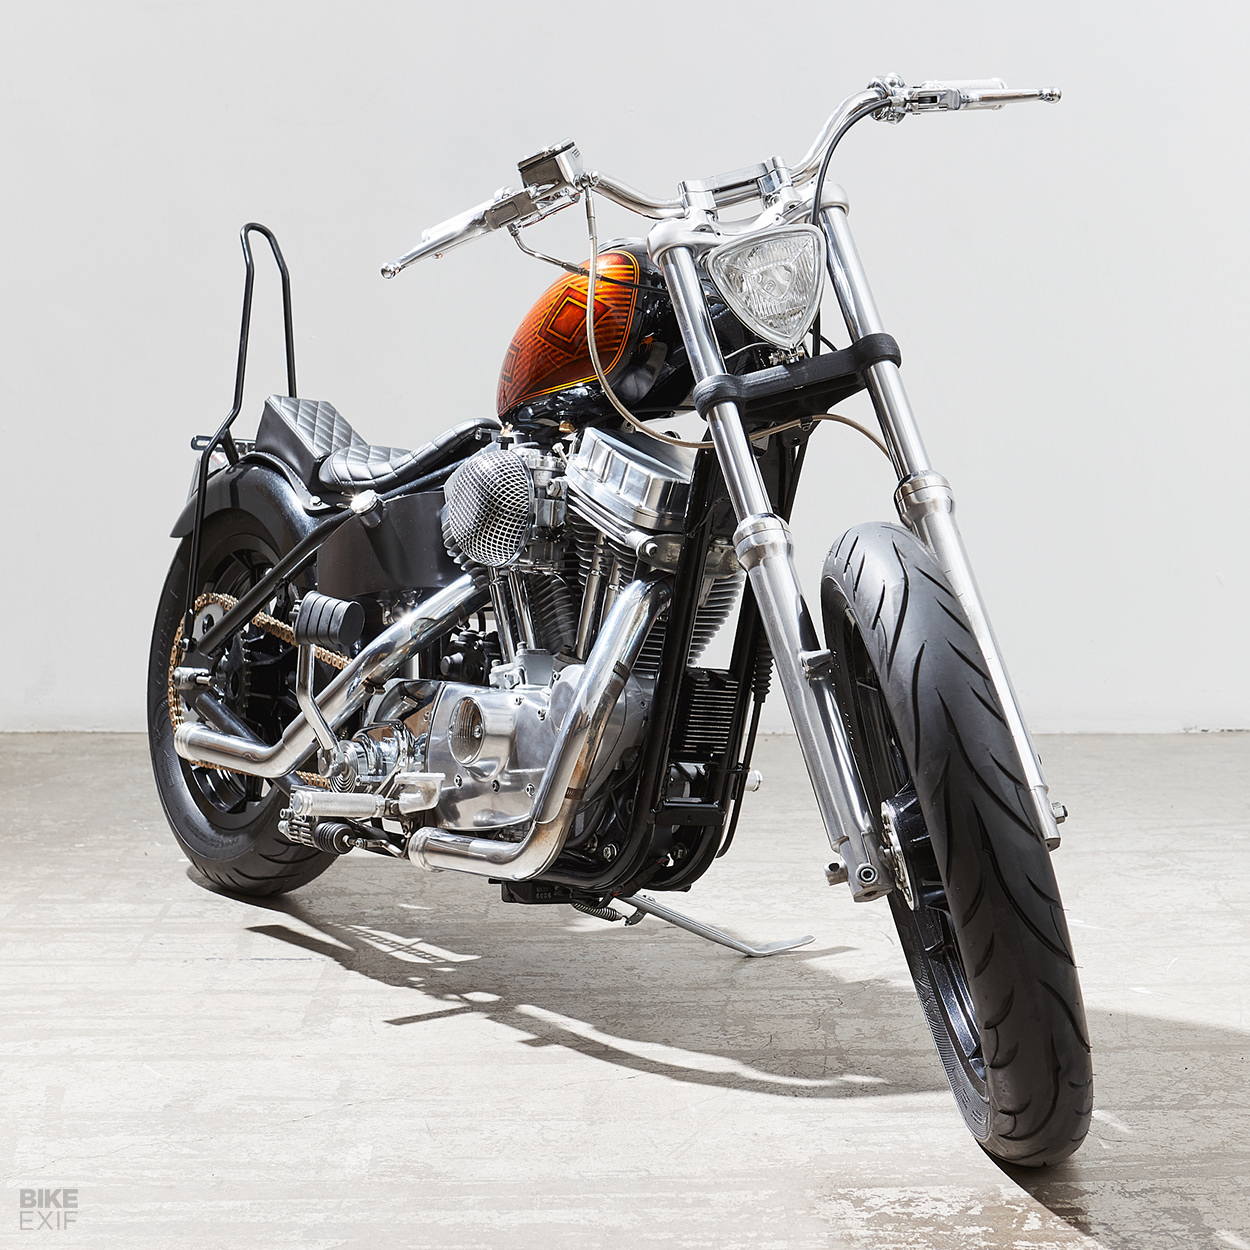 Lo Fi Perfection A Harley 883 Bobber From Canada Bike Exif